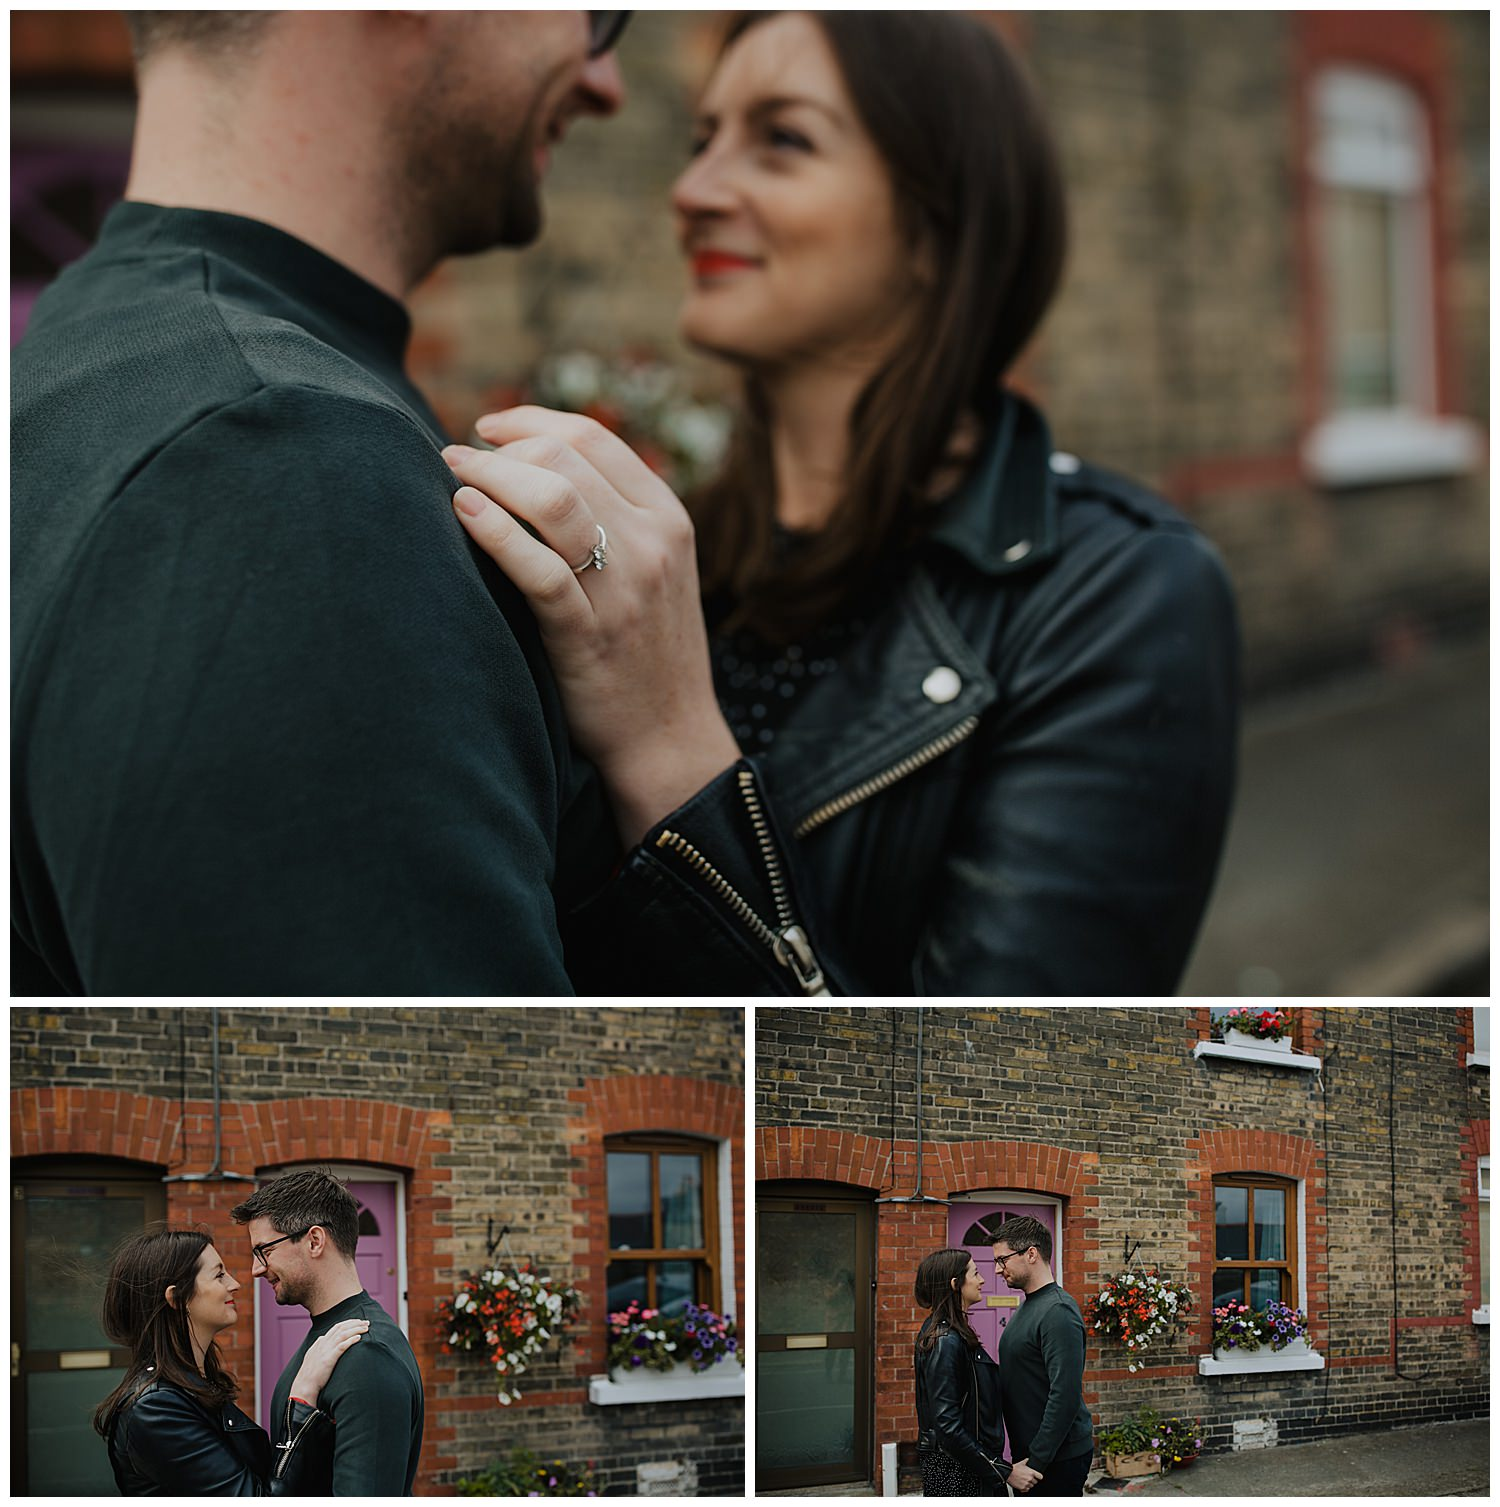 j-l-house-engagement-session-dublin-wedding-photographer-livia-figueiredo_7.jpg